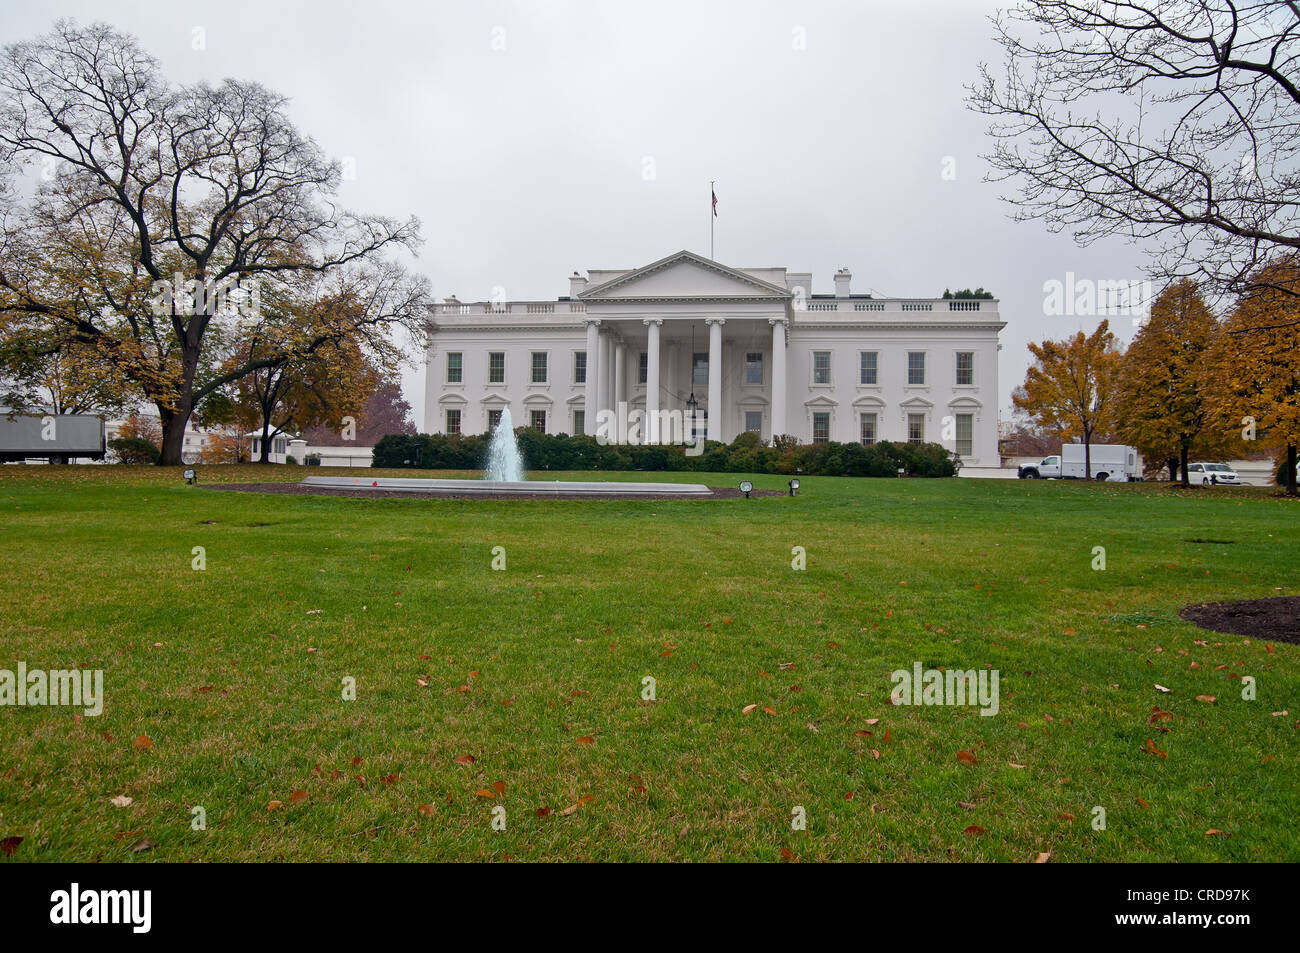 USA, Washington. North facade of the White House in the autumn in cloudy weather - Stock Image